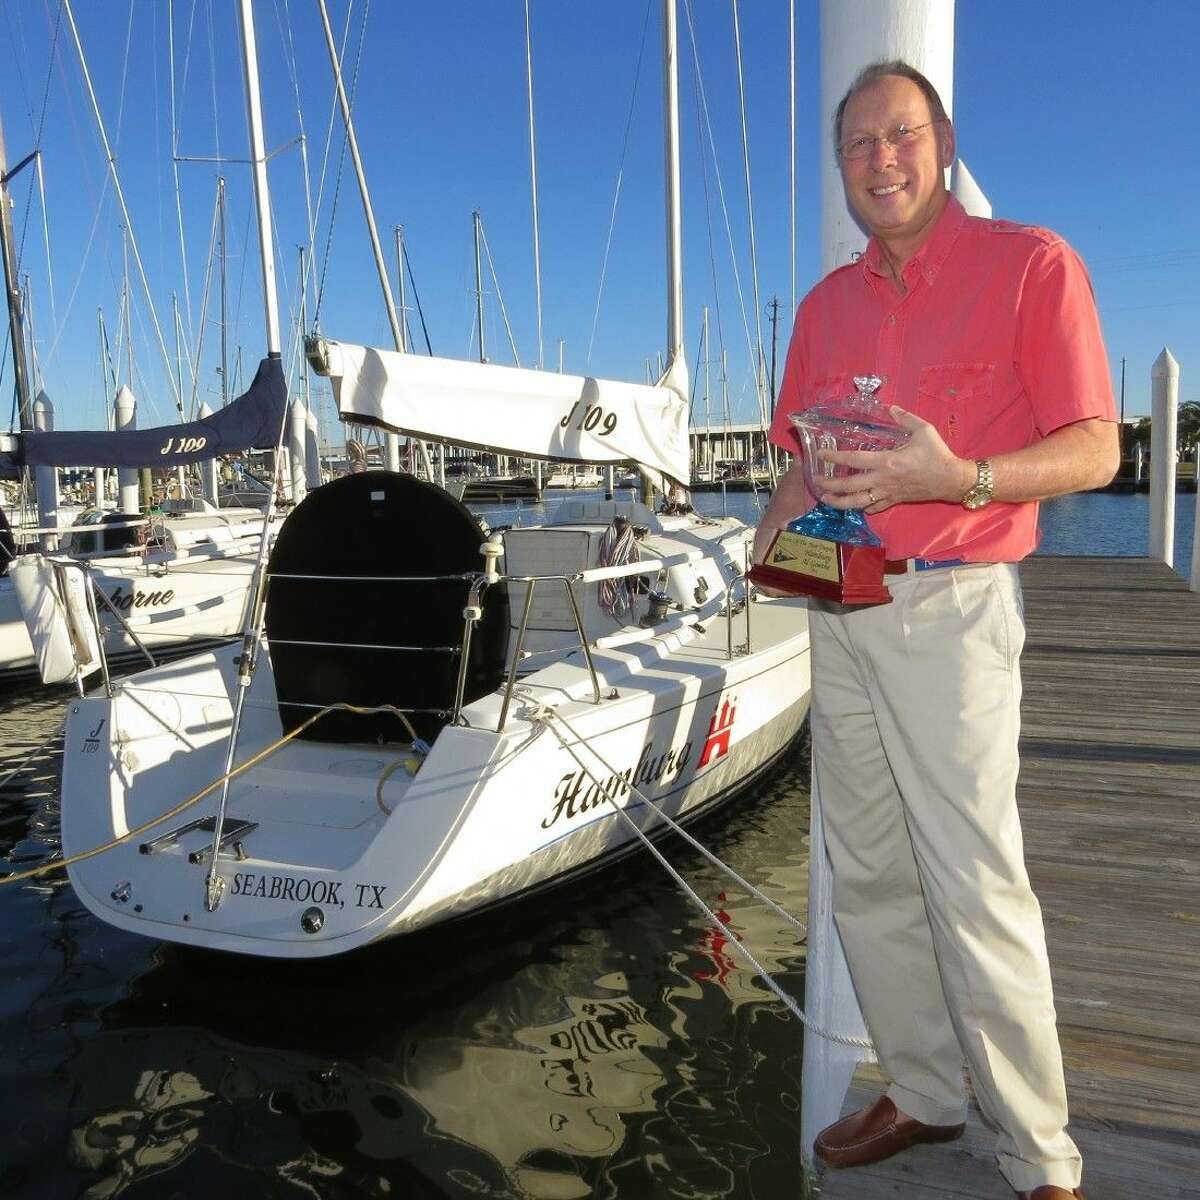 """Lakewood Yacht Club racer Al Goethe holds his """"Yacht of theYear"""" award alongside his J/105 """"Hamburg"""" which captured the award at the club's Fall Ball and Awards Ceremony held recently."""